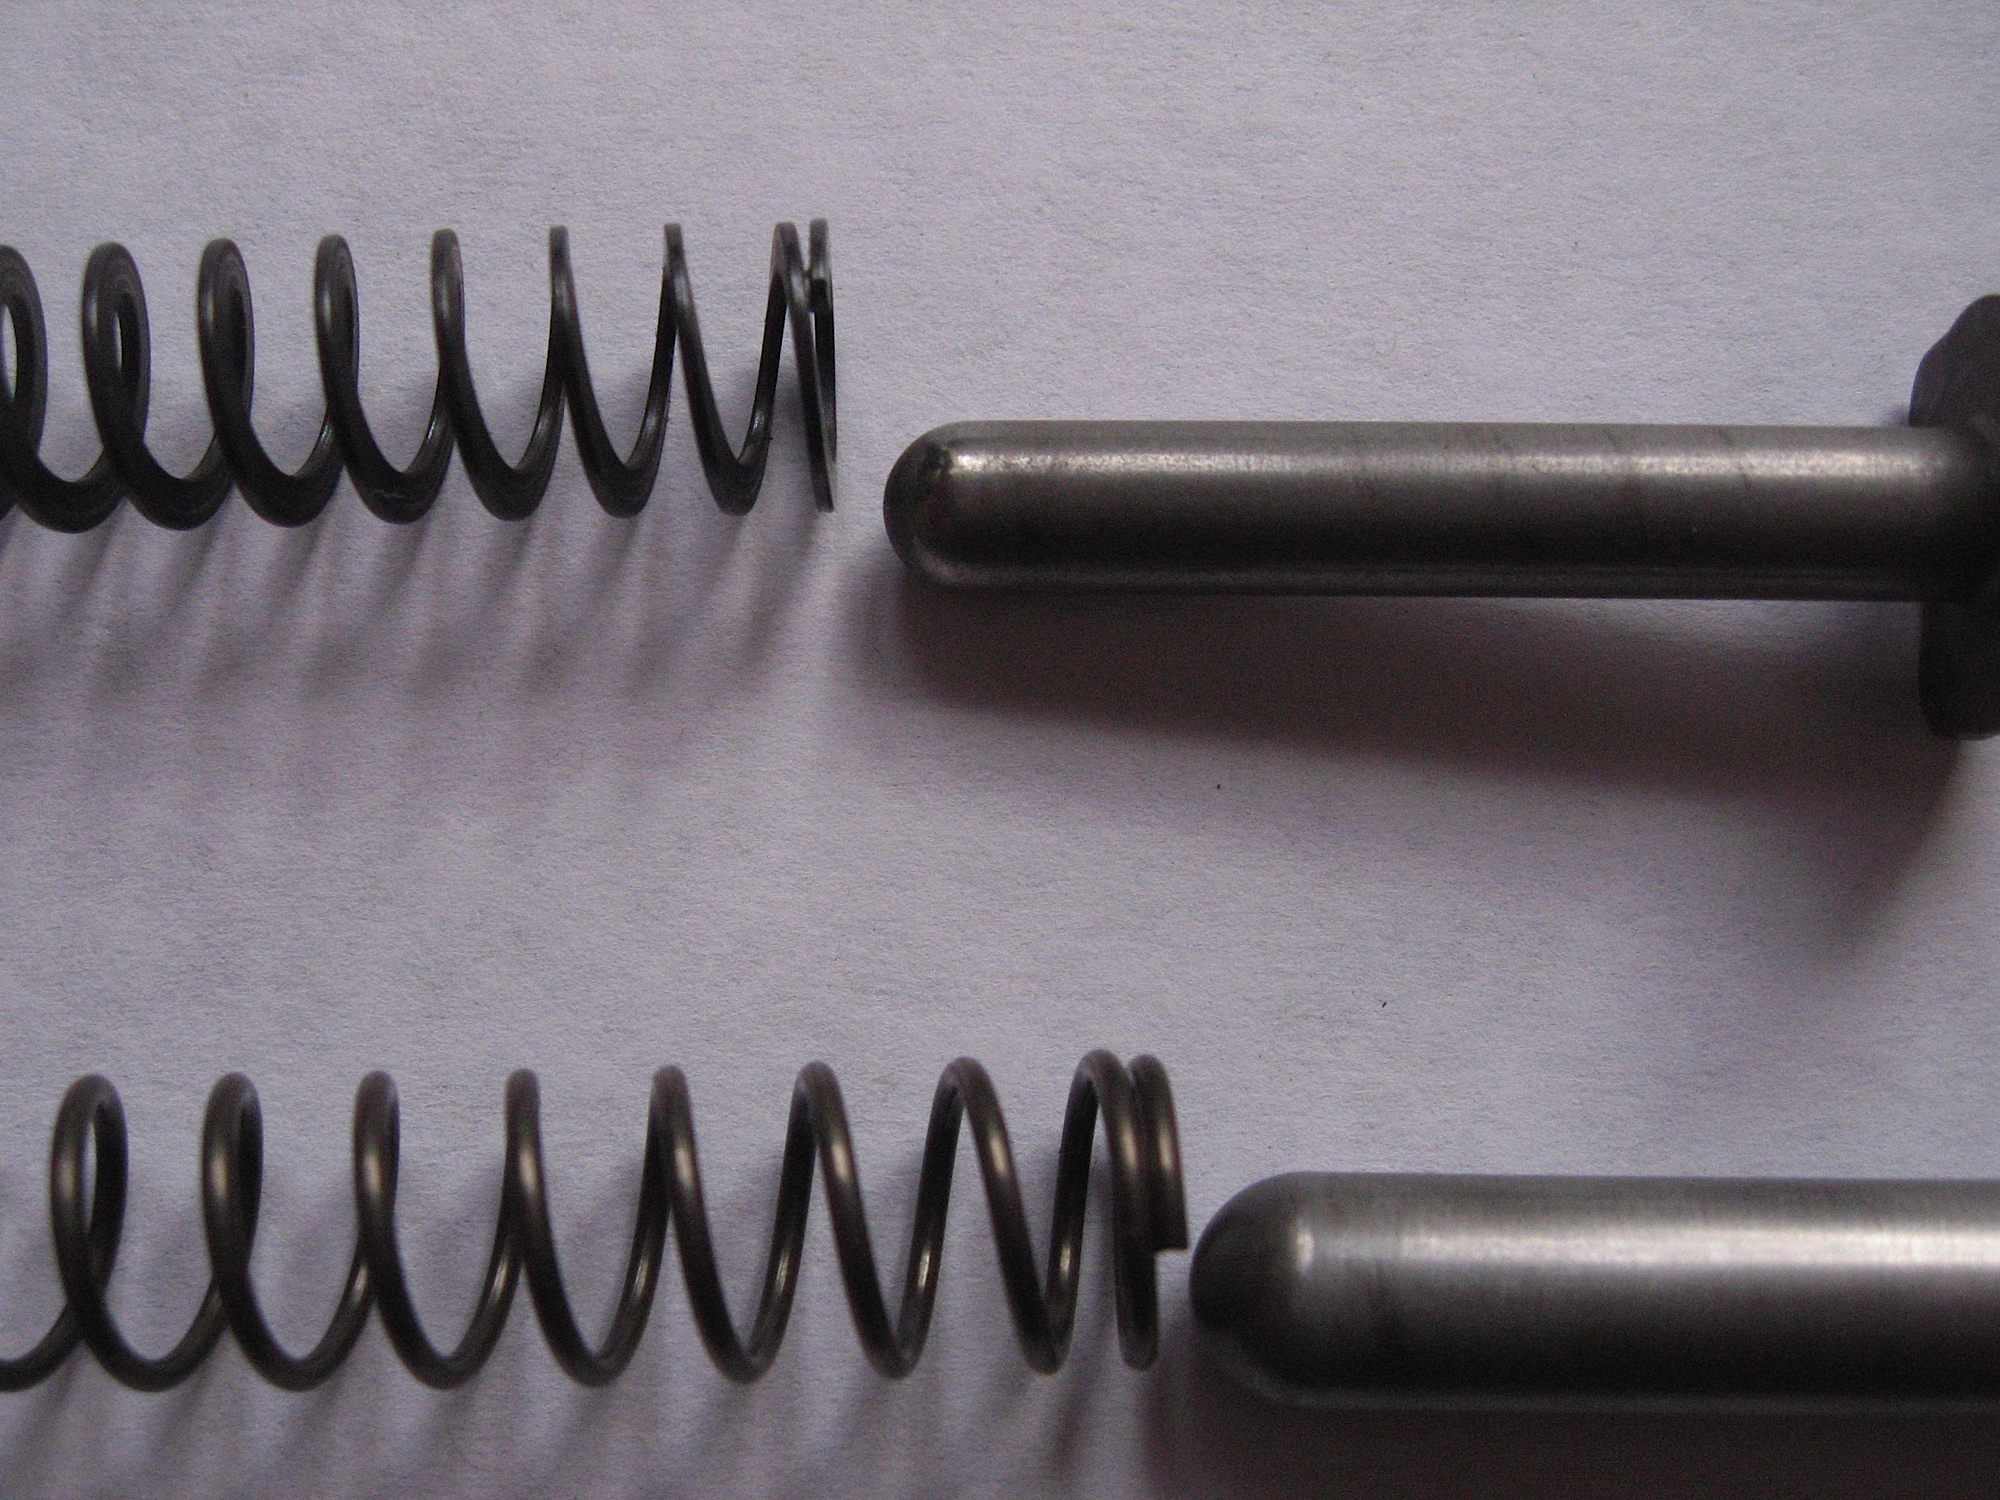 1911 flat wire recoil spring [Archive] - pistol-forum.com